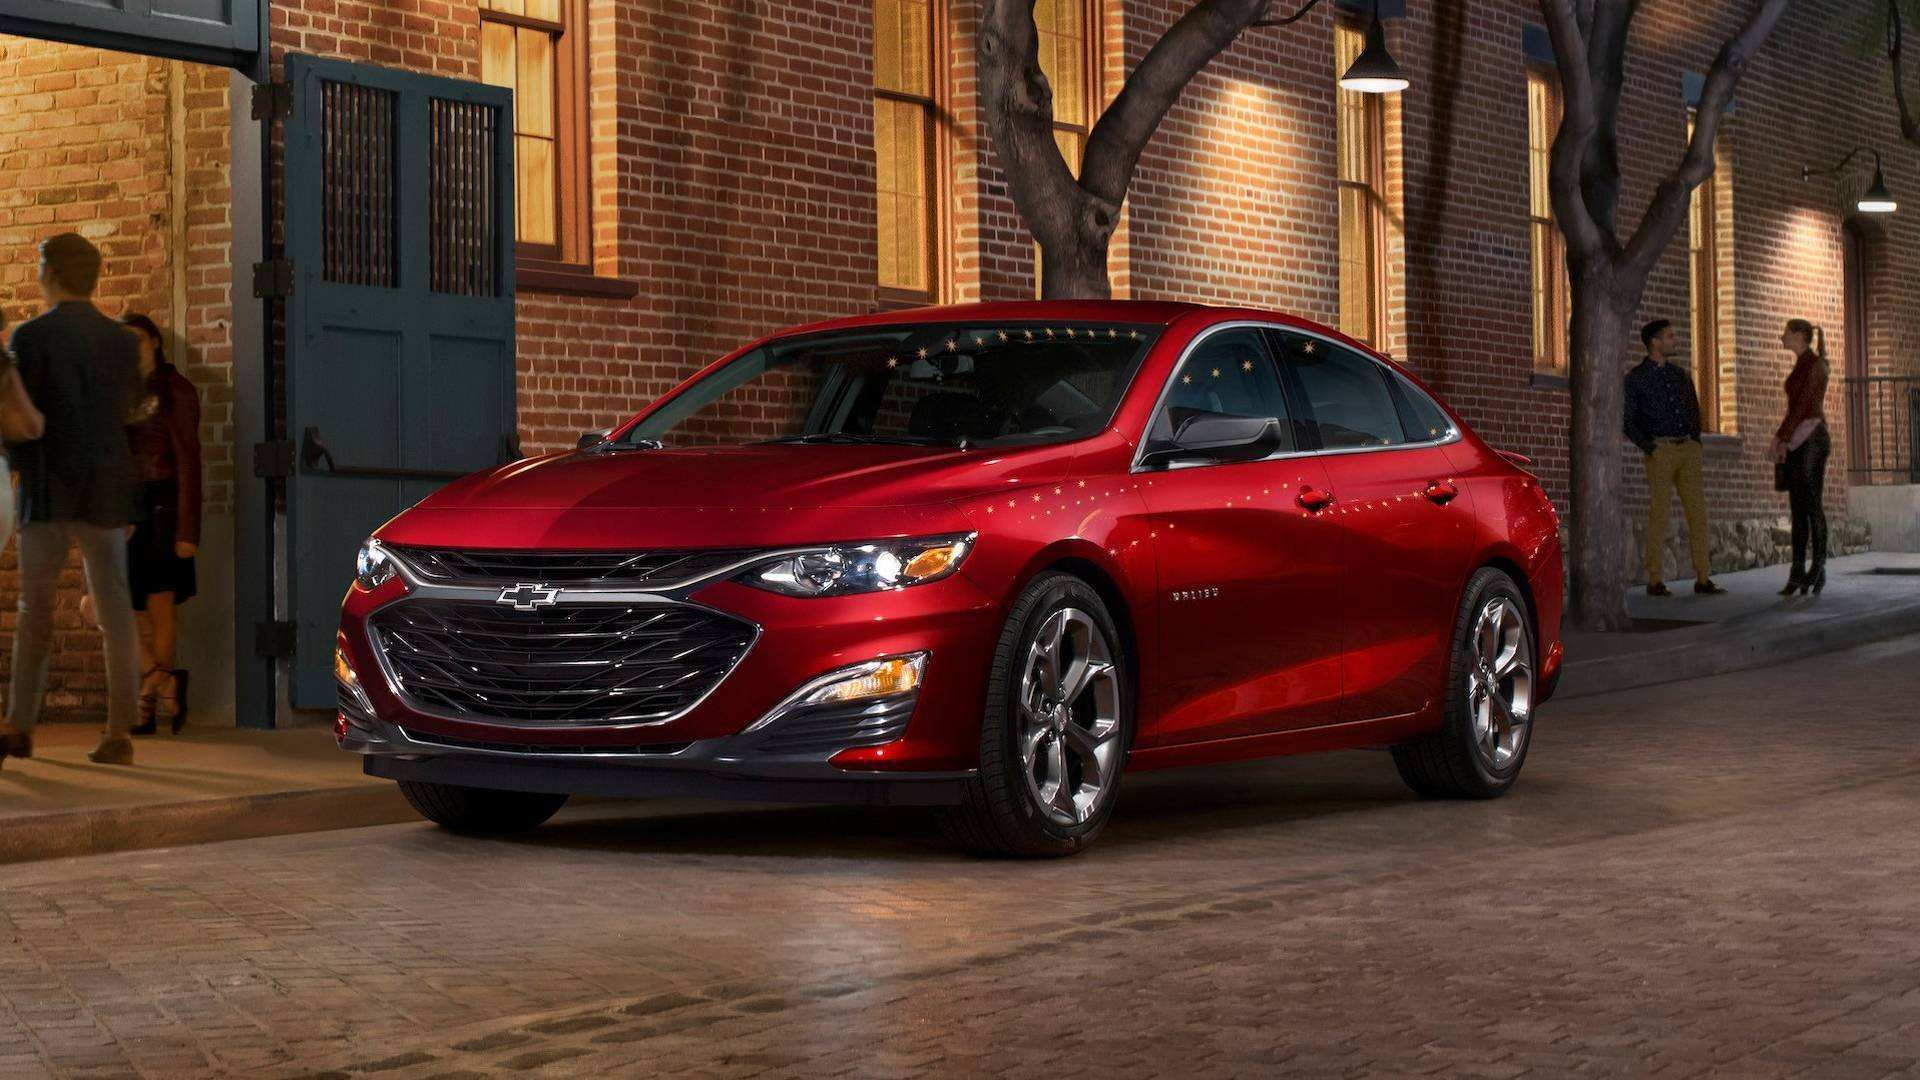 17 All New 2019 Chevrolet Malibu History